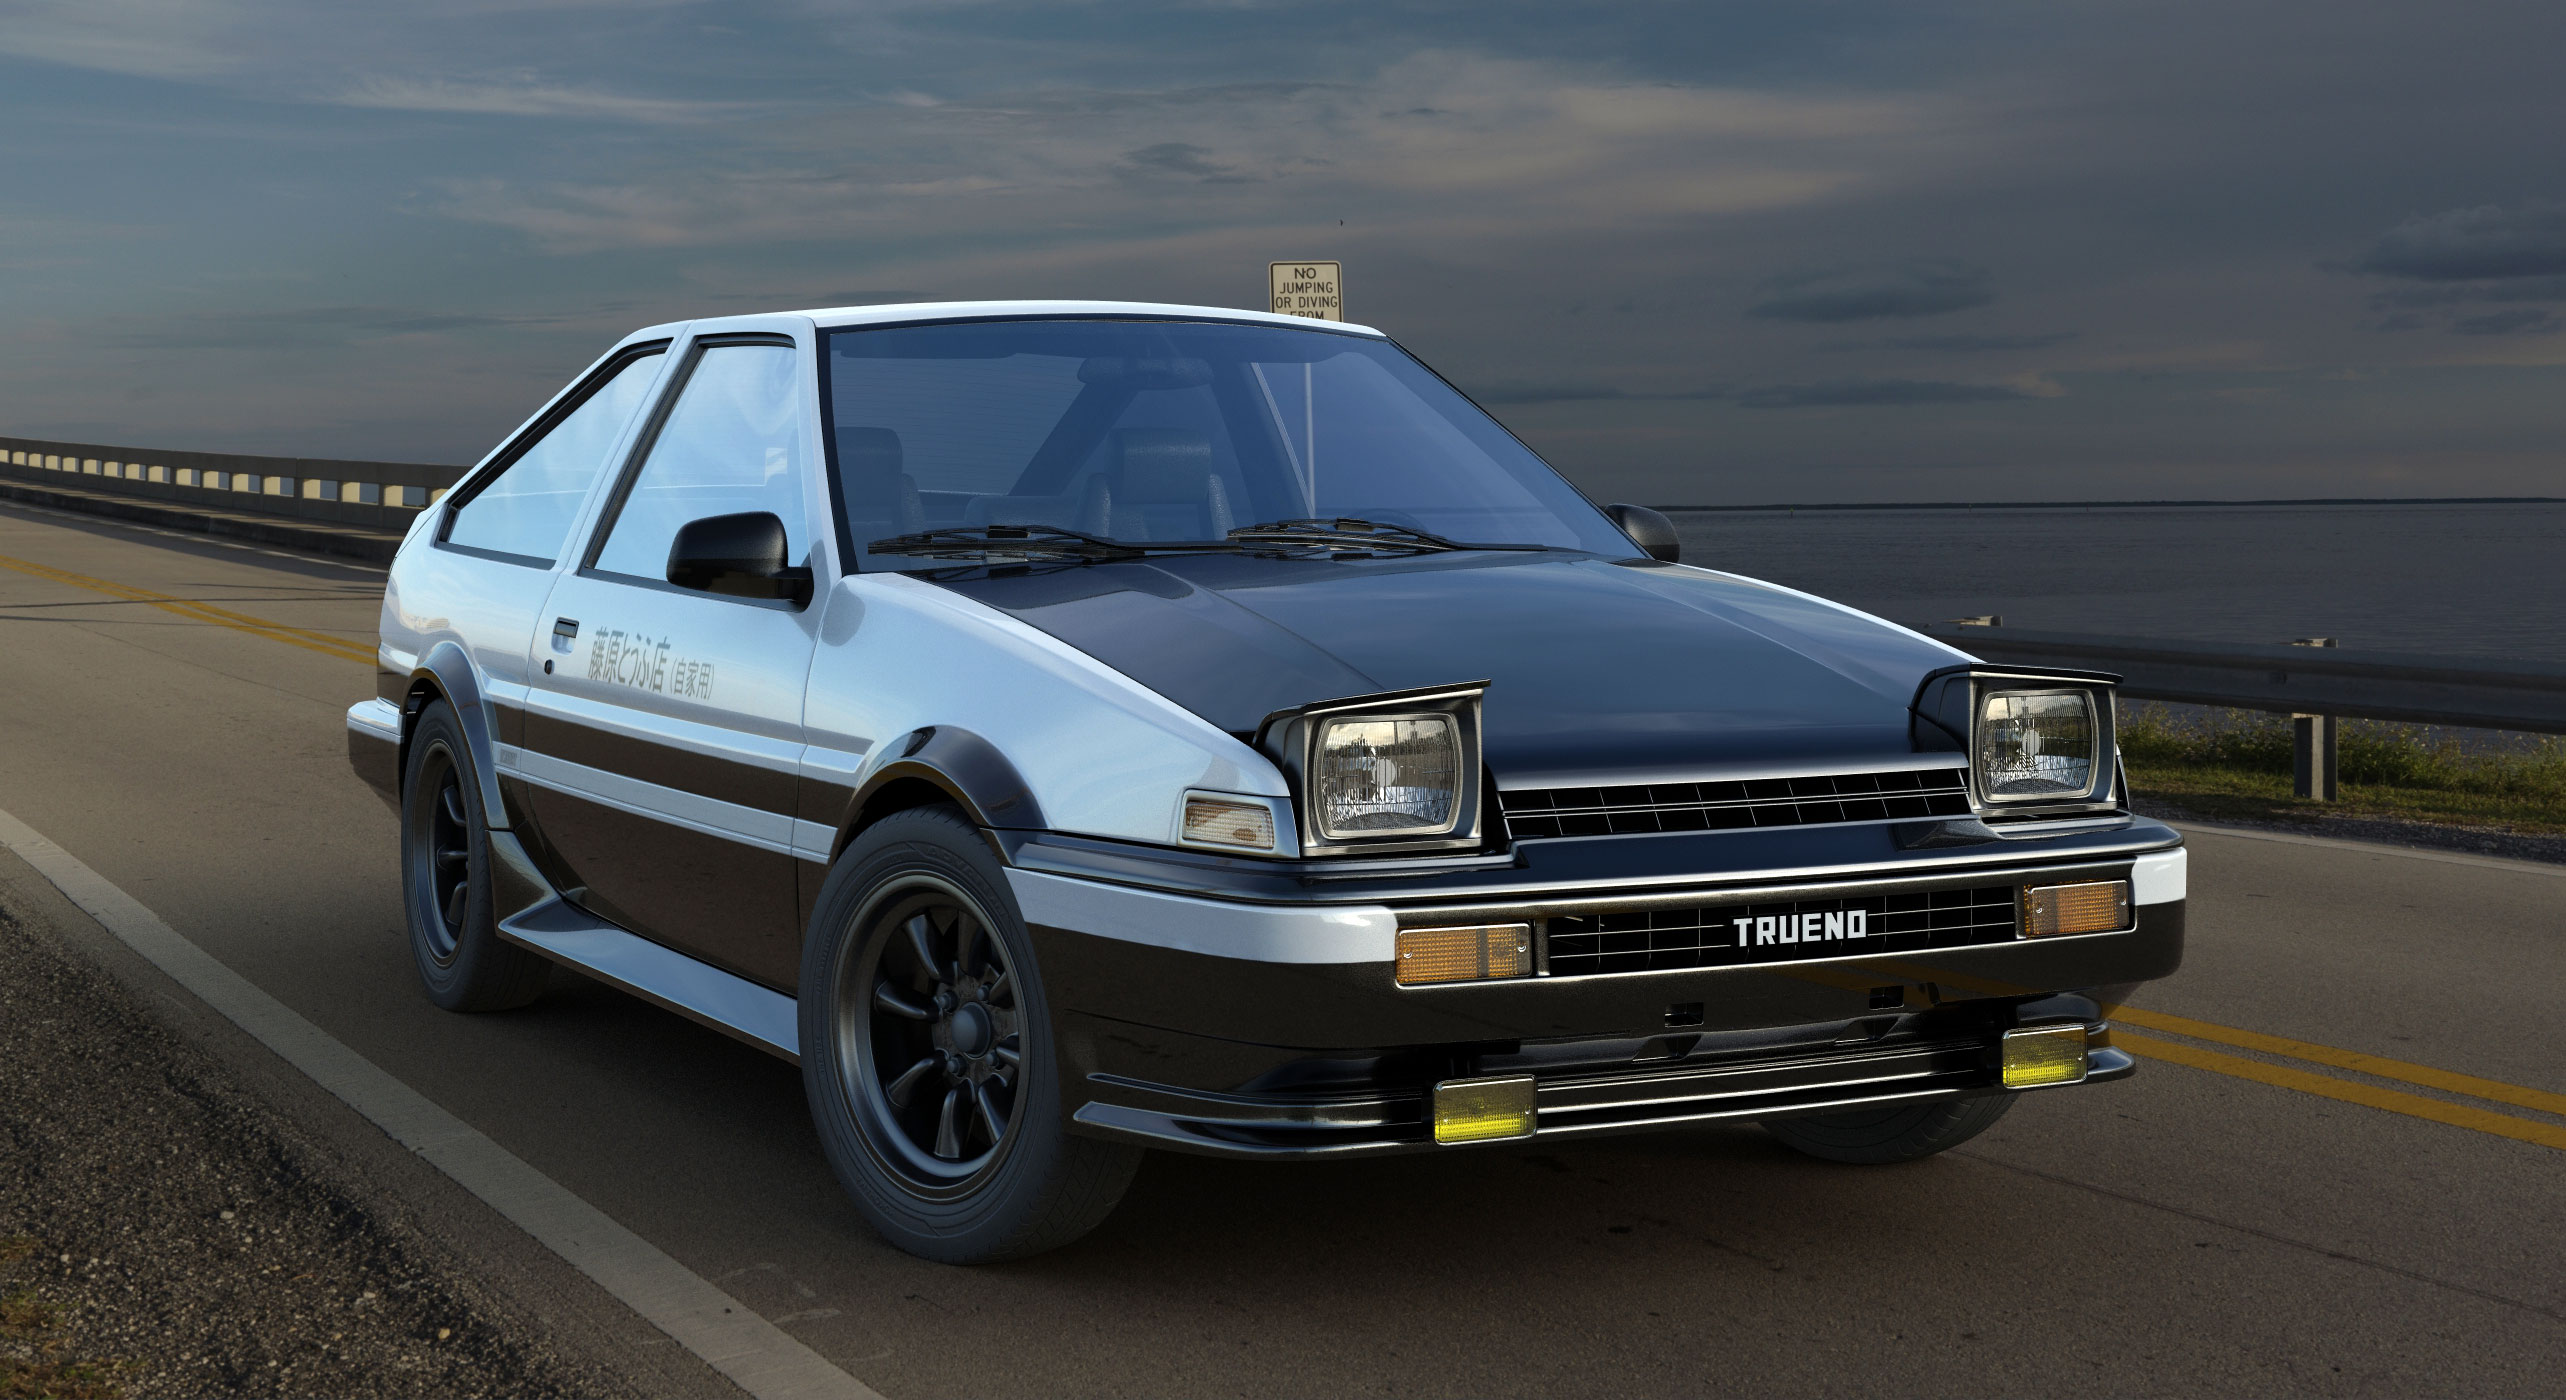 Toyota sprinter trueno ae86 initial d edition by mixjoe on - Ae86 initial d wallpaper ...